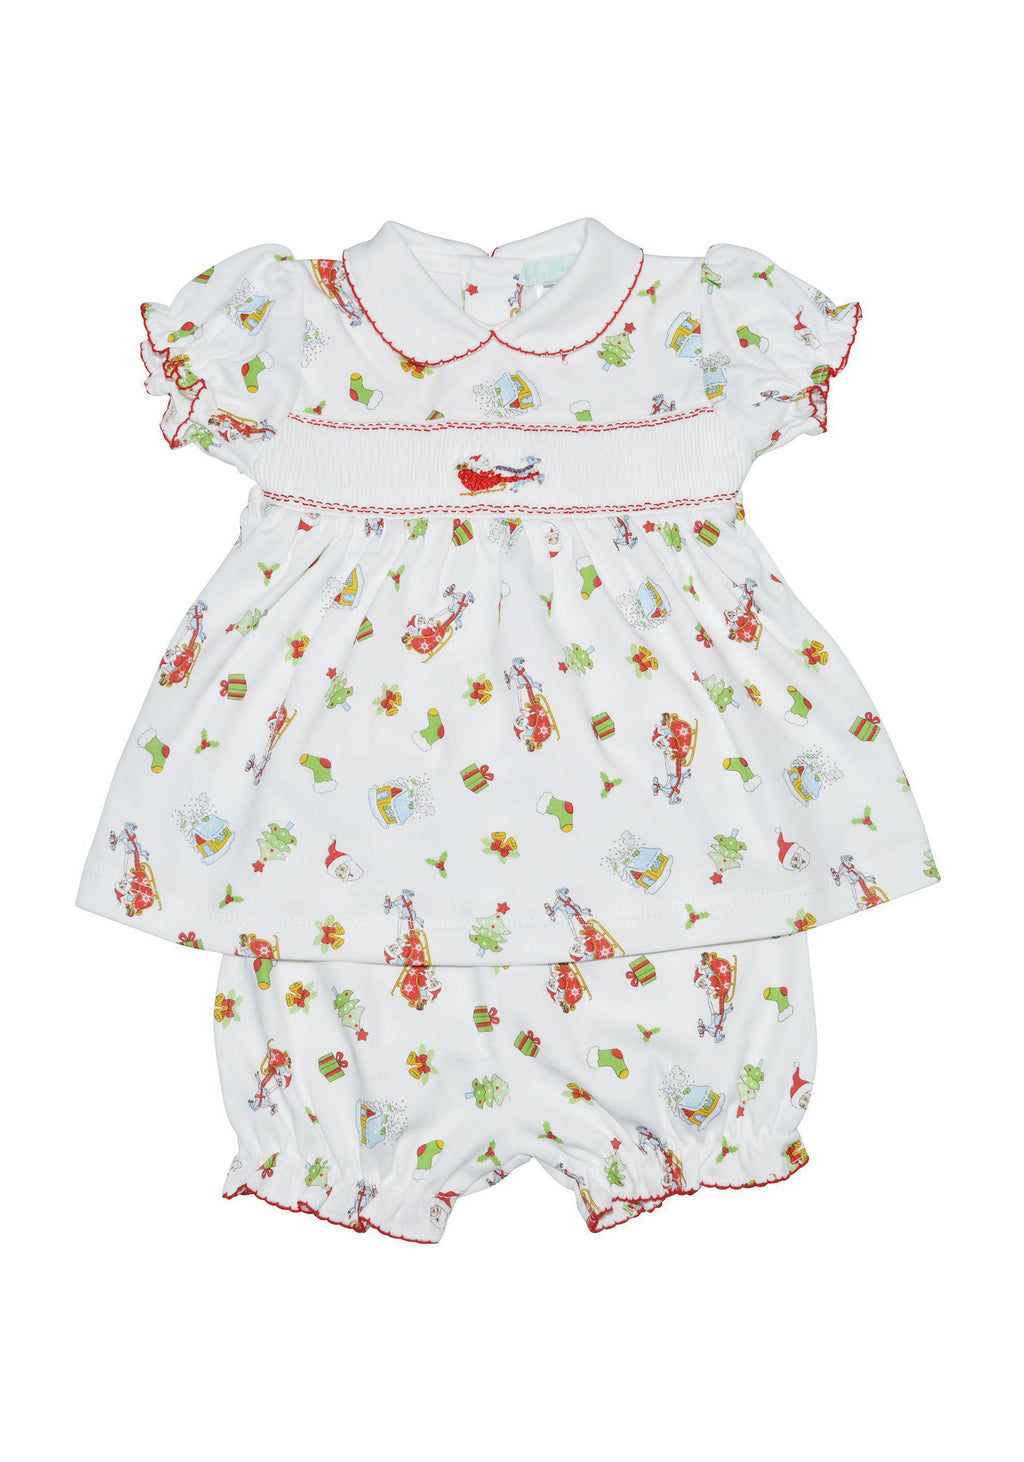 Santa on the Way Smocked Dress - Little Threads Inc. Children's Clothing